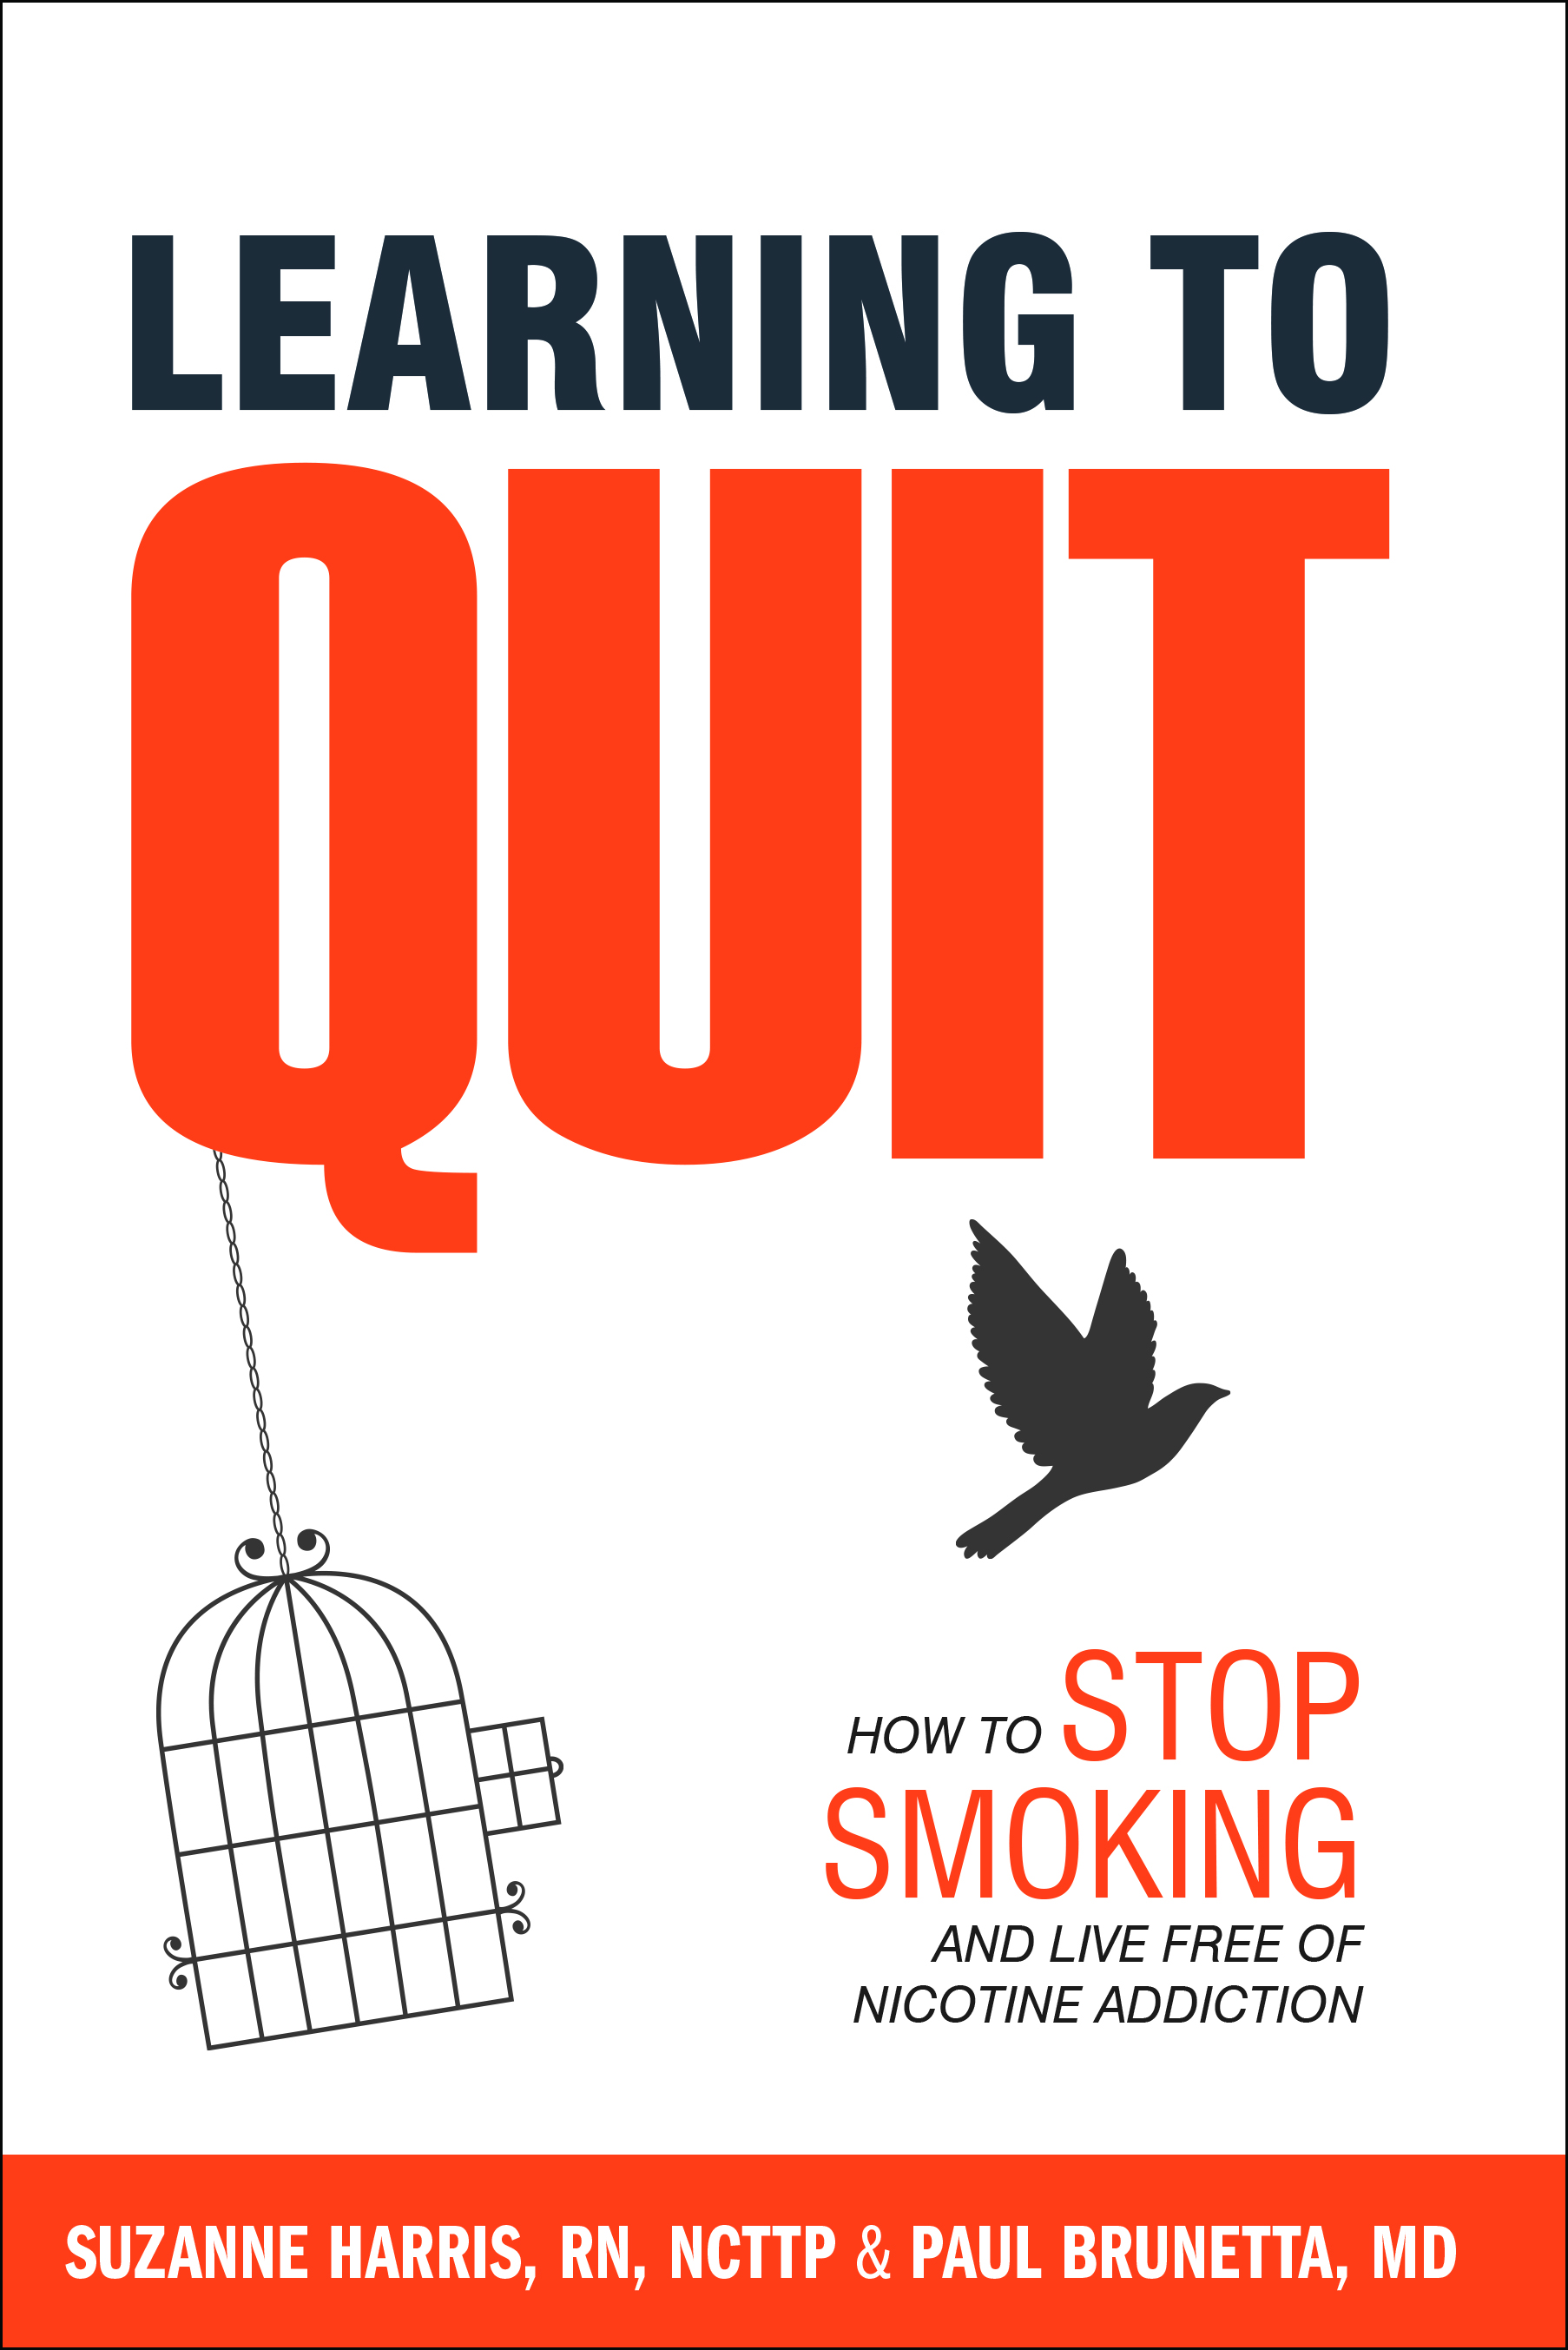 Learning to Quit by Suzanne Harris and Paul Brunetta